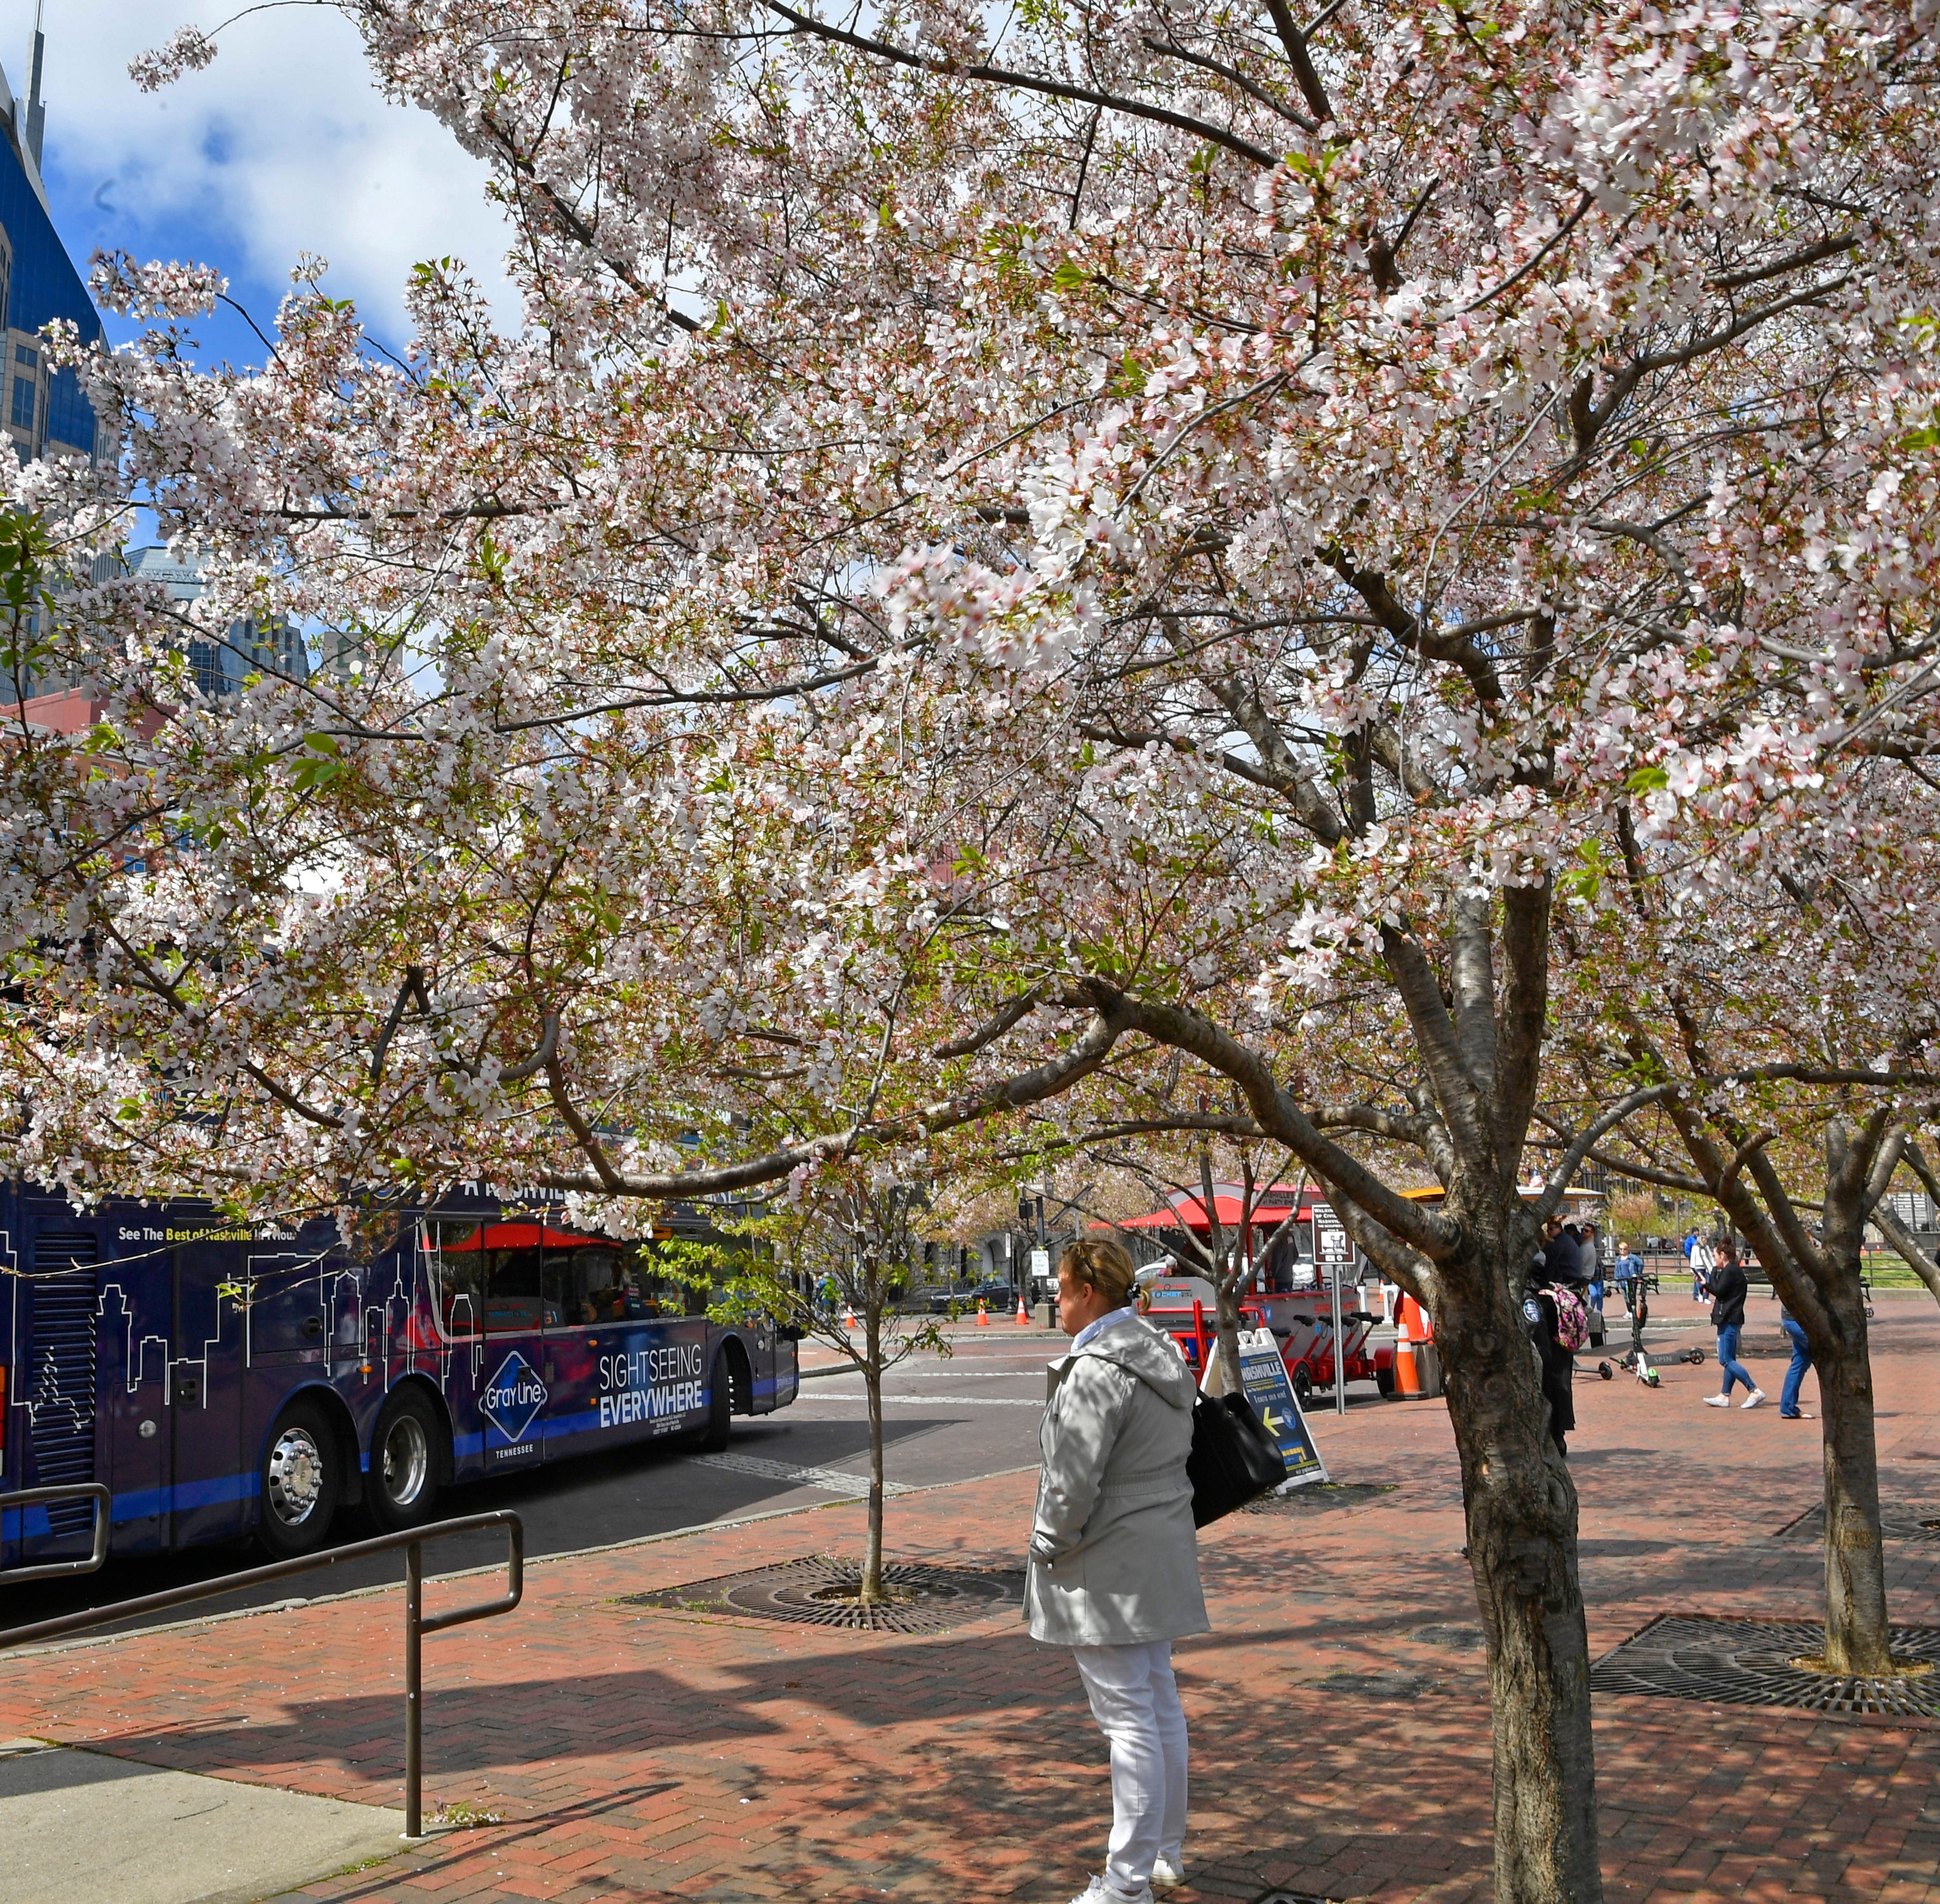 Cherry tree outcry inspires relocation plan, apology from Nashville's local NFL Draft organizers